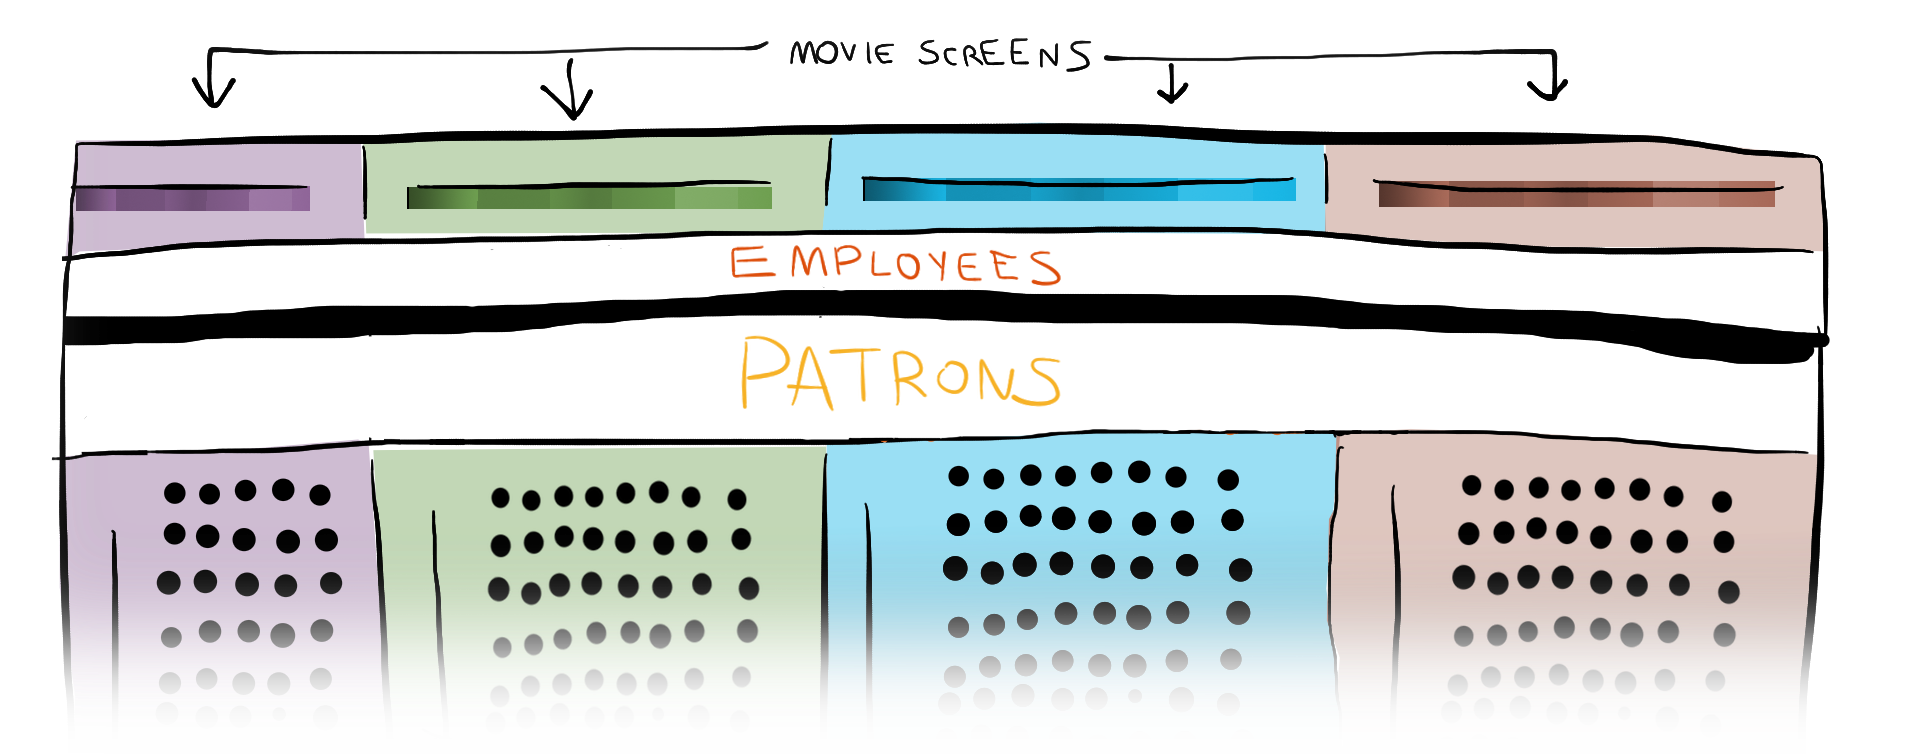 Theater Diagram PNG C.png